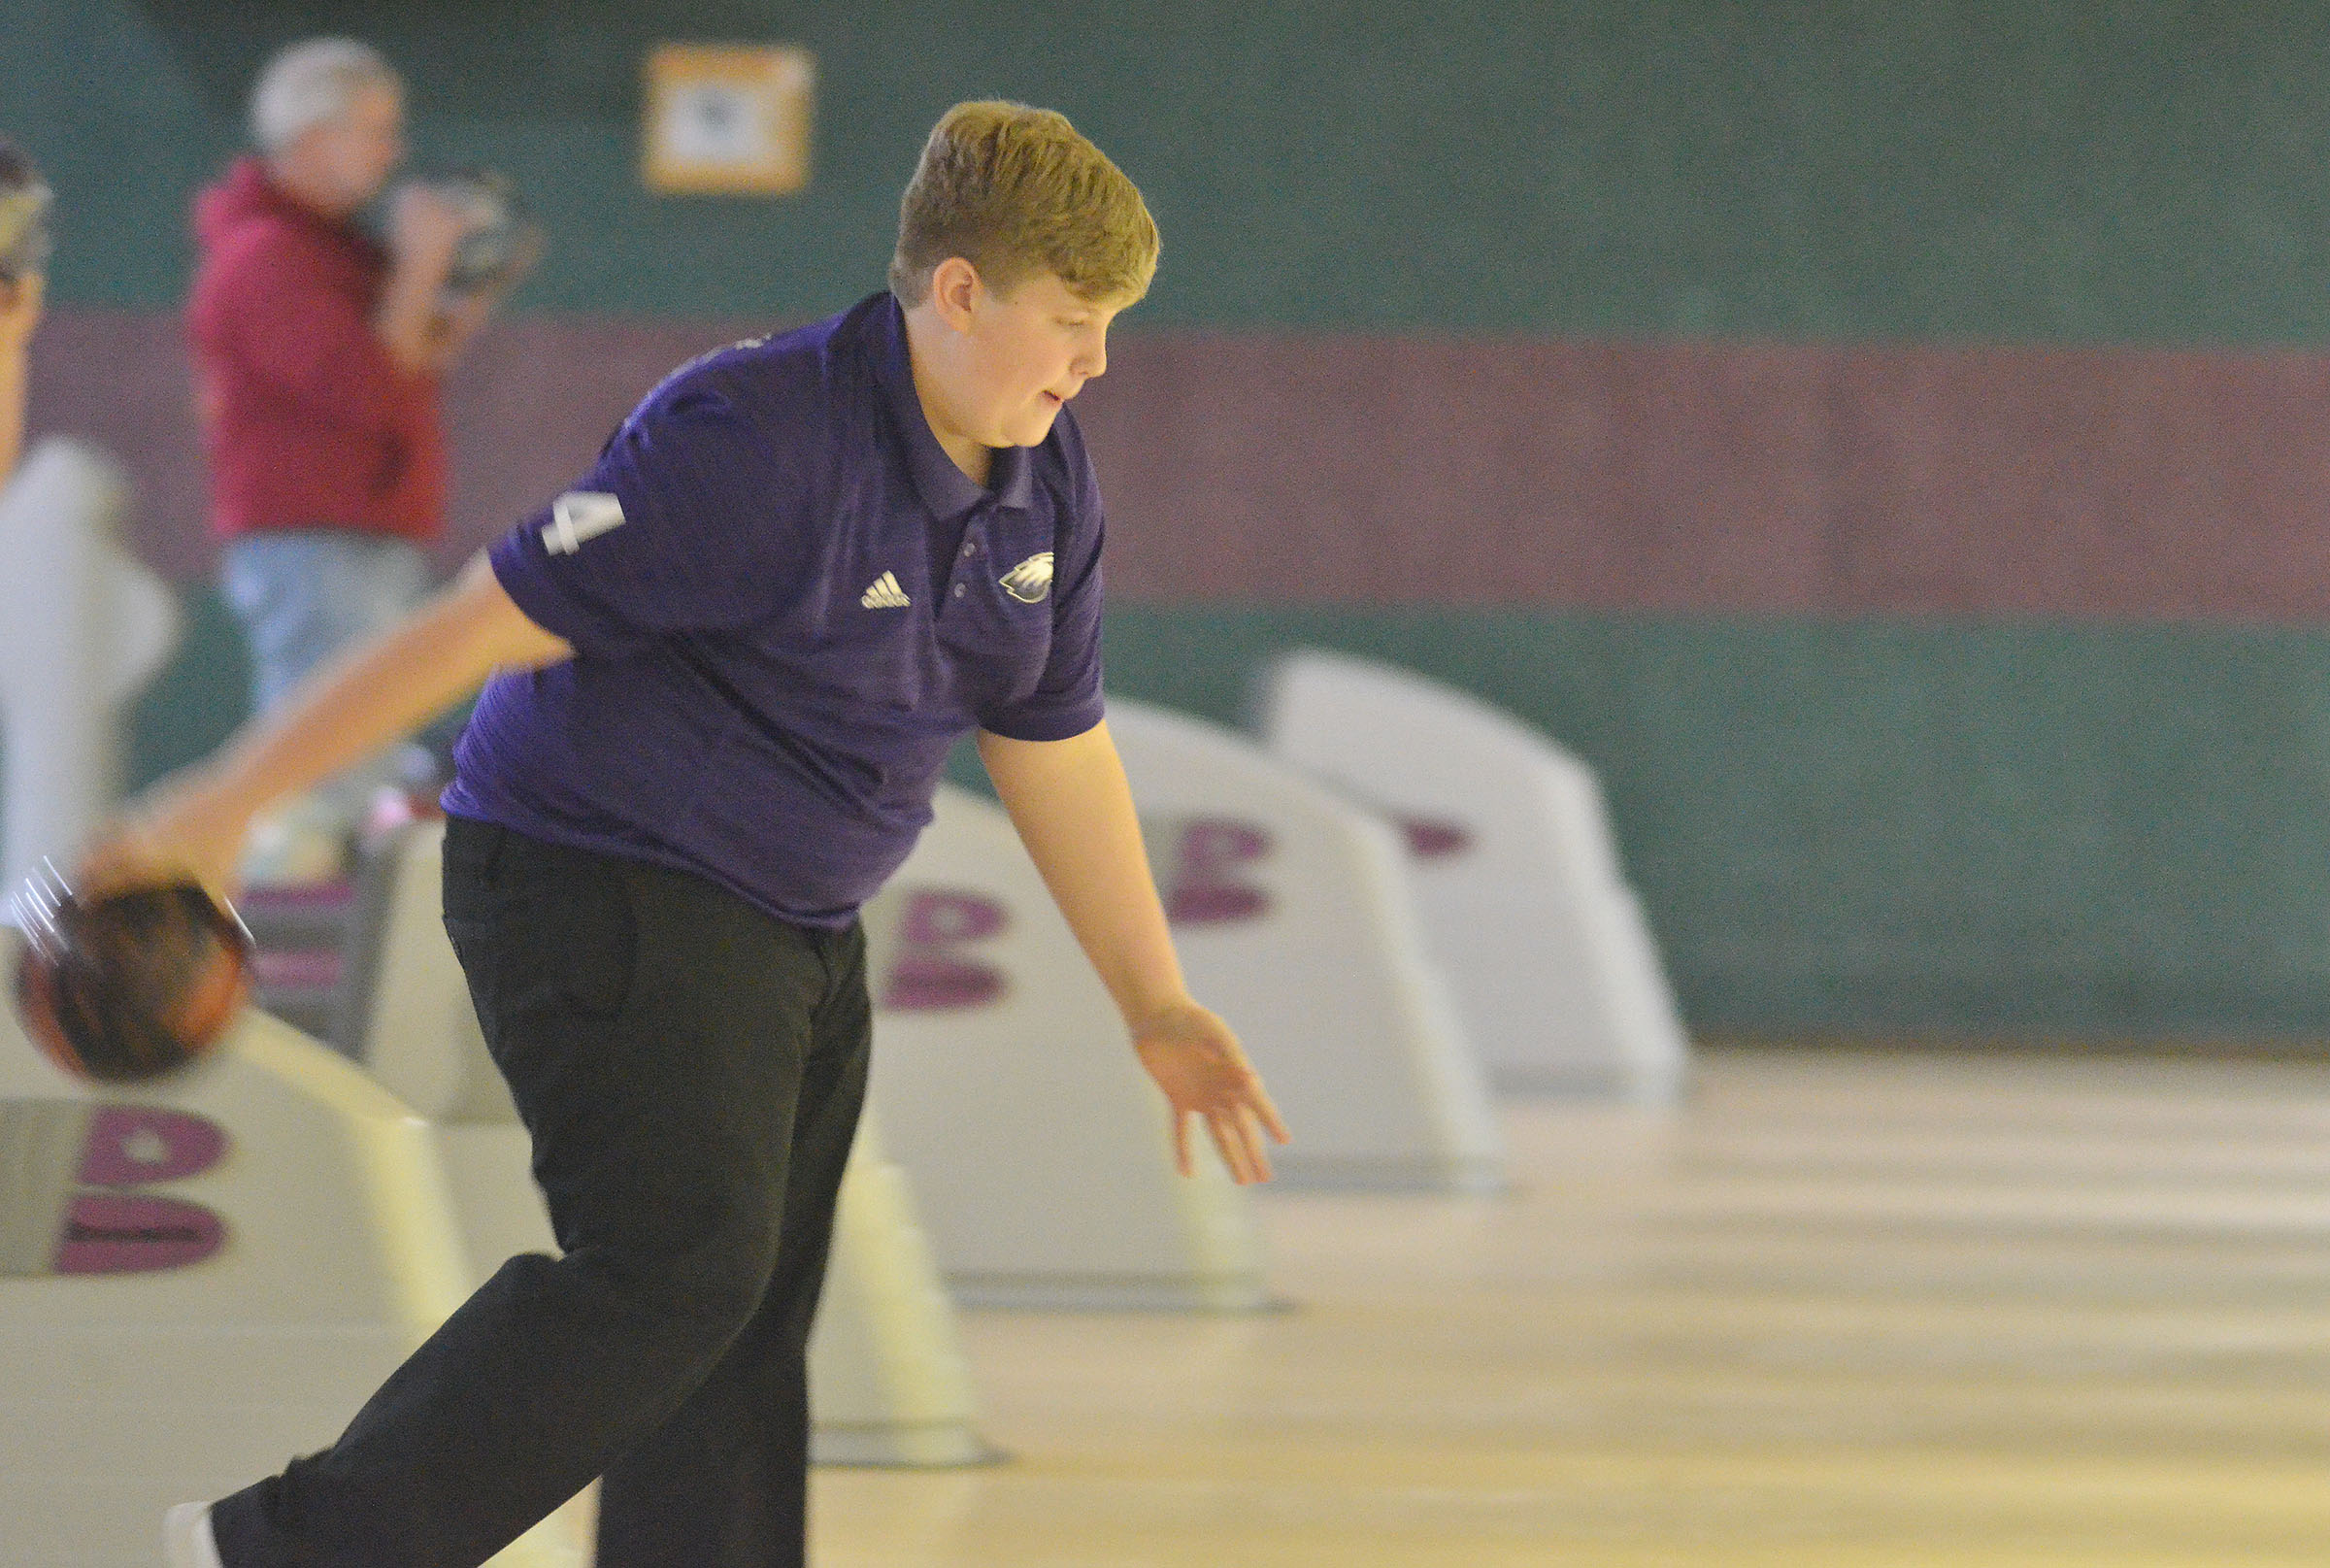 Campbellsville Middle School eighth-grader Noah Mardis bowls.